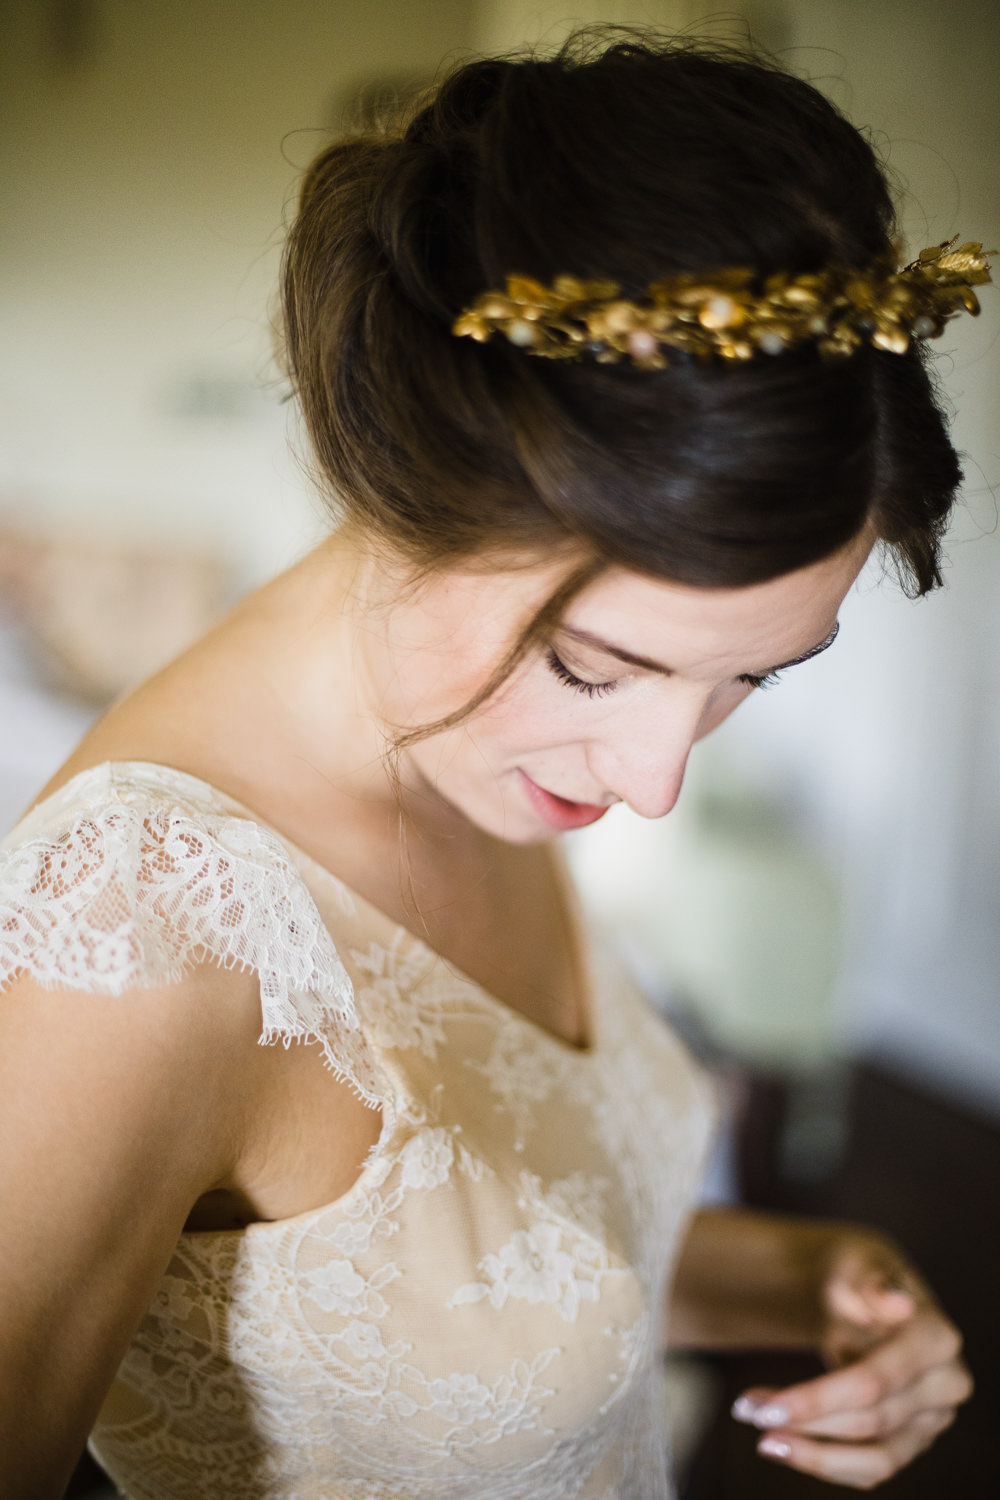 Hair Accessory Bride Bridal Tiara Fun Laughter Relaxed Wedding Chris Barber Photography